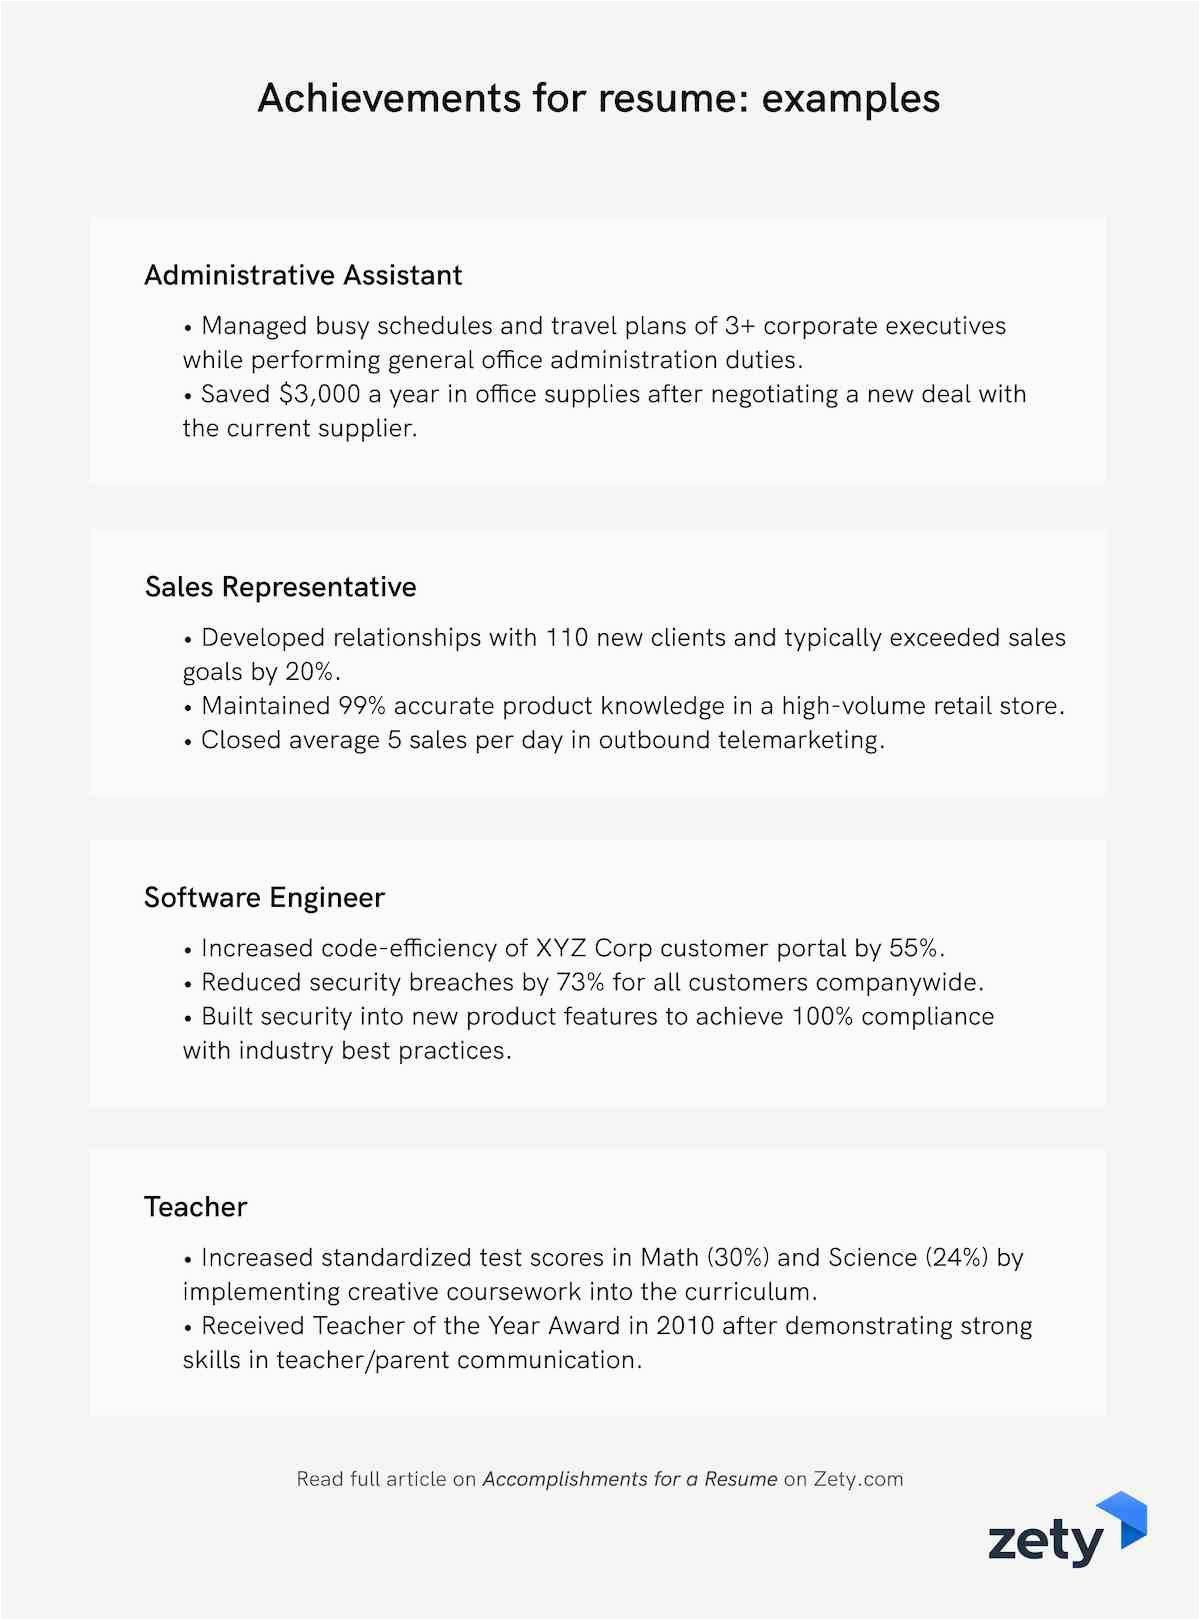 achievements for resume